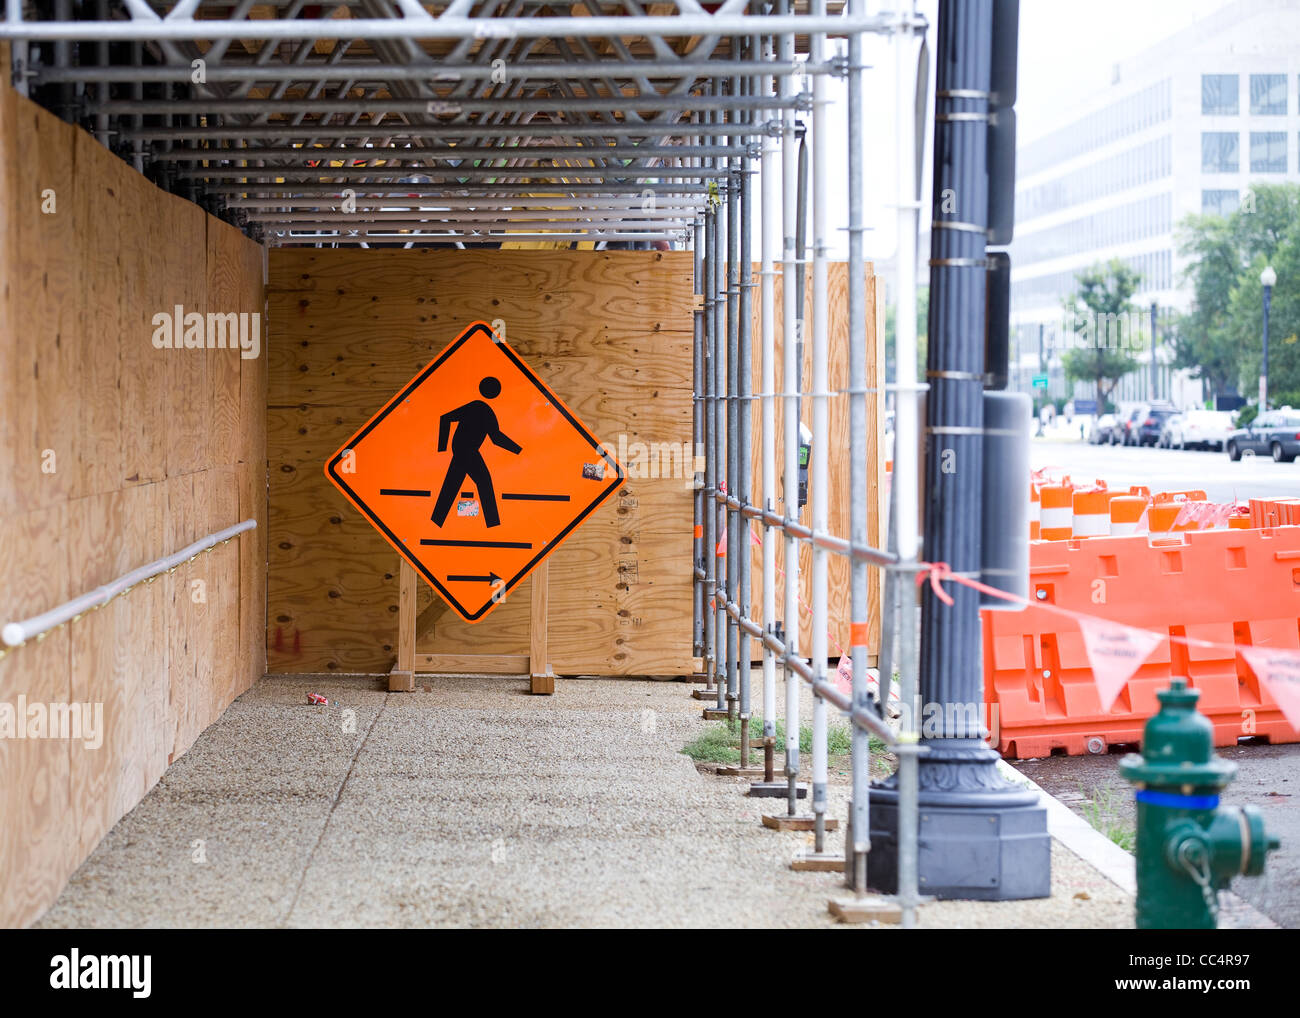 Pedestrian crossing sign under construction scaffold - Stock Image